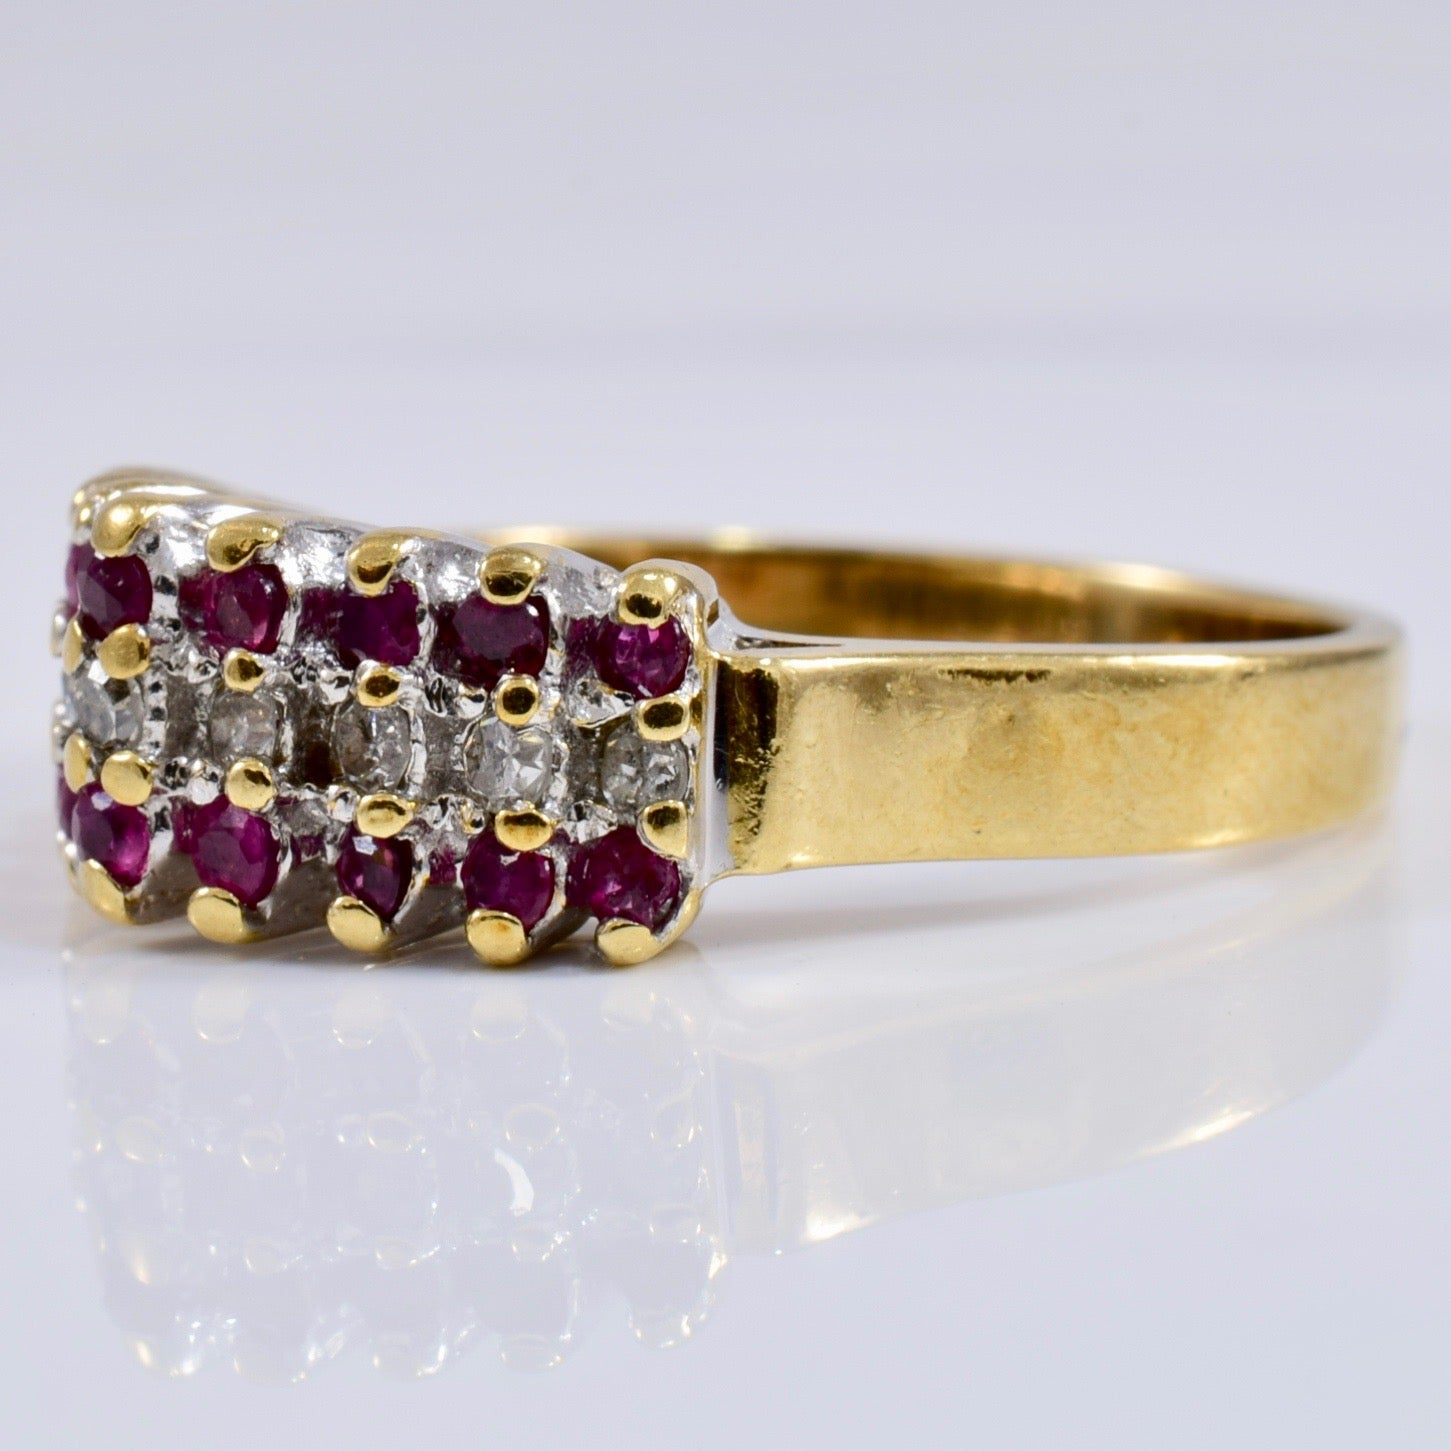 High Set Ruby and Diamond Ring | 0.21 ctw SZ 7.25 |